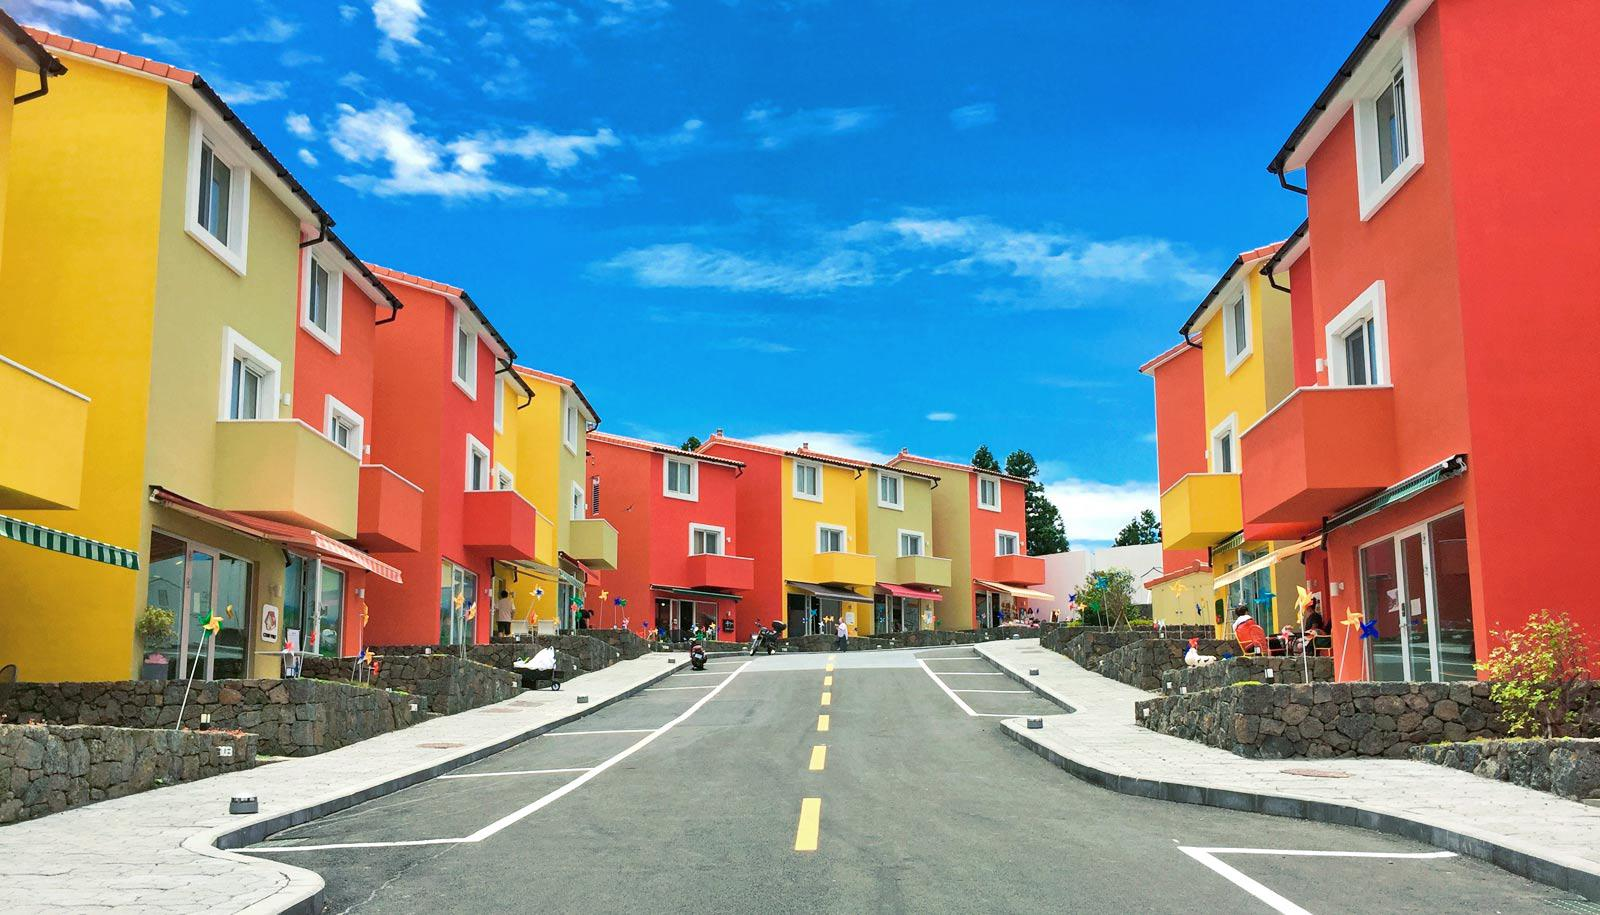 red and yellow buildings in neighborhood